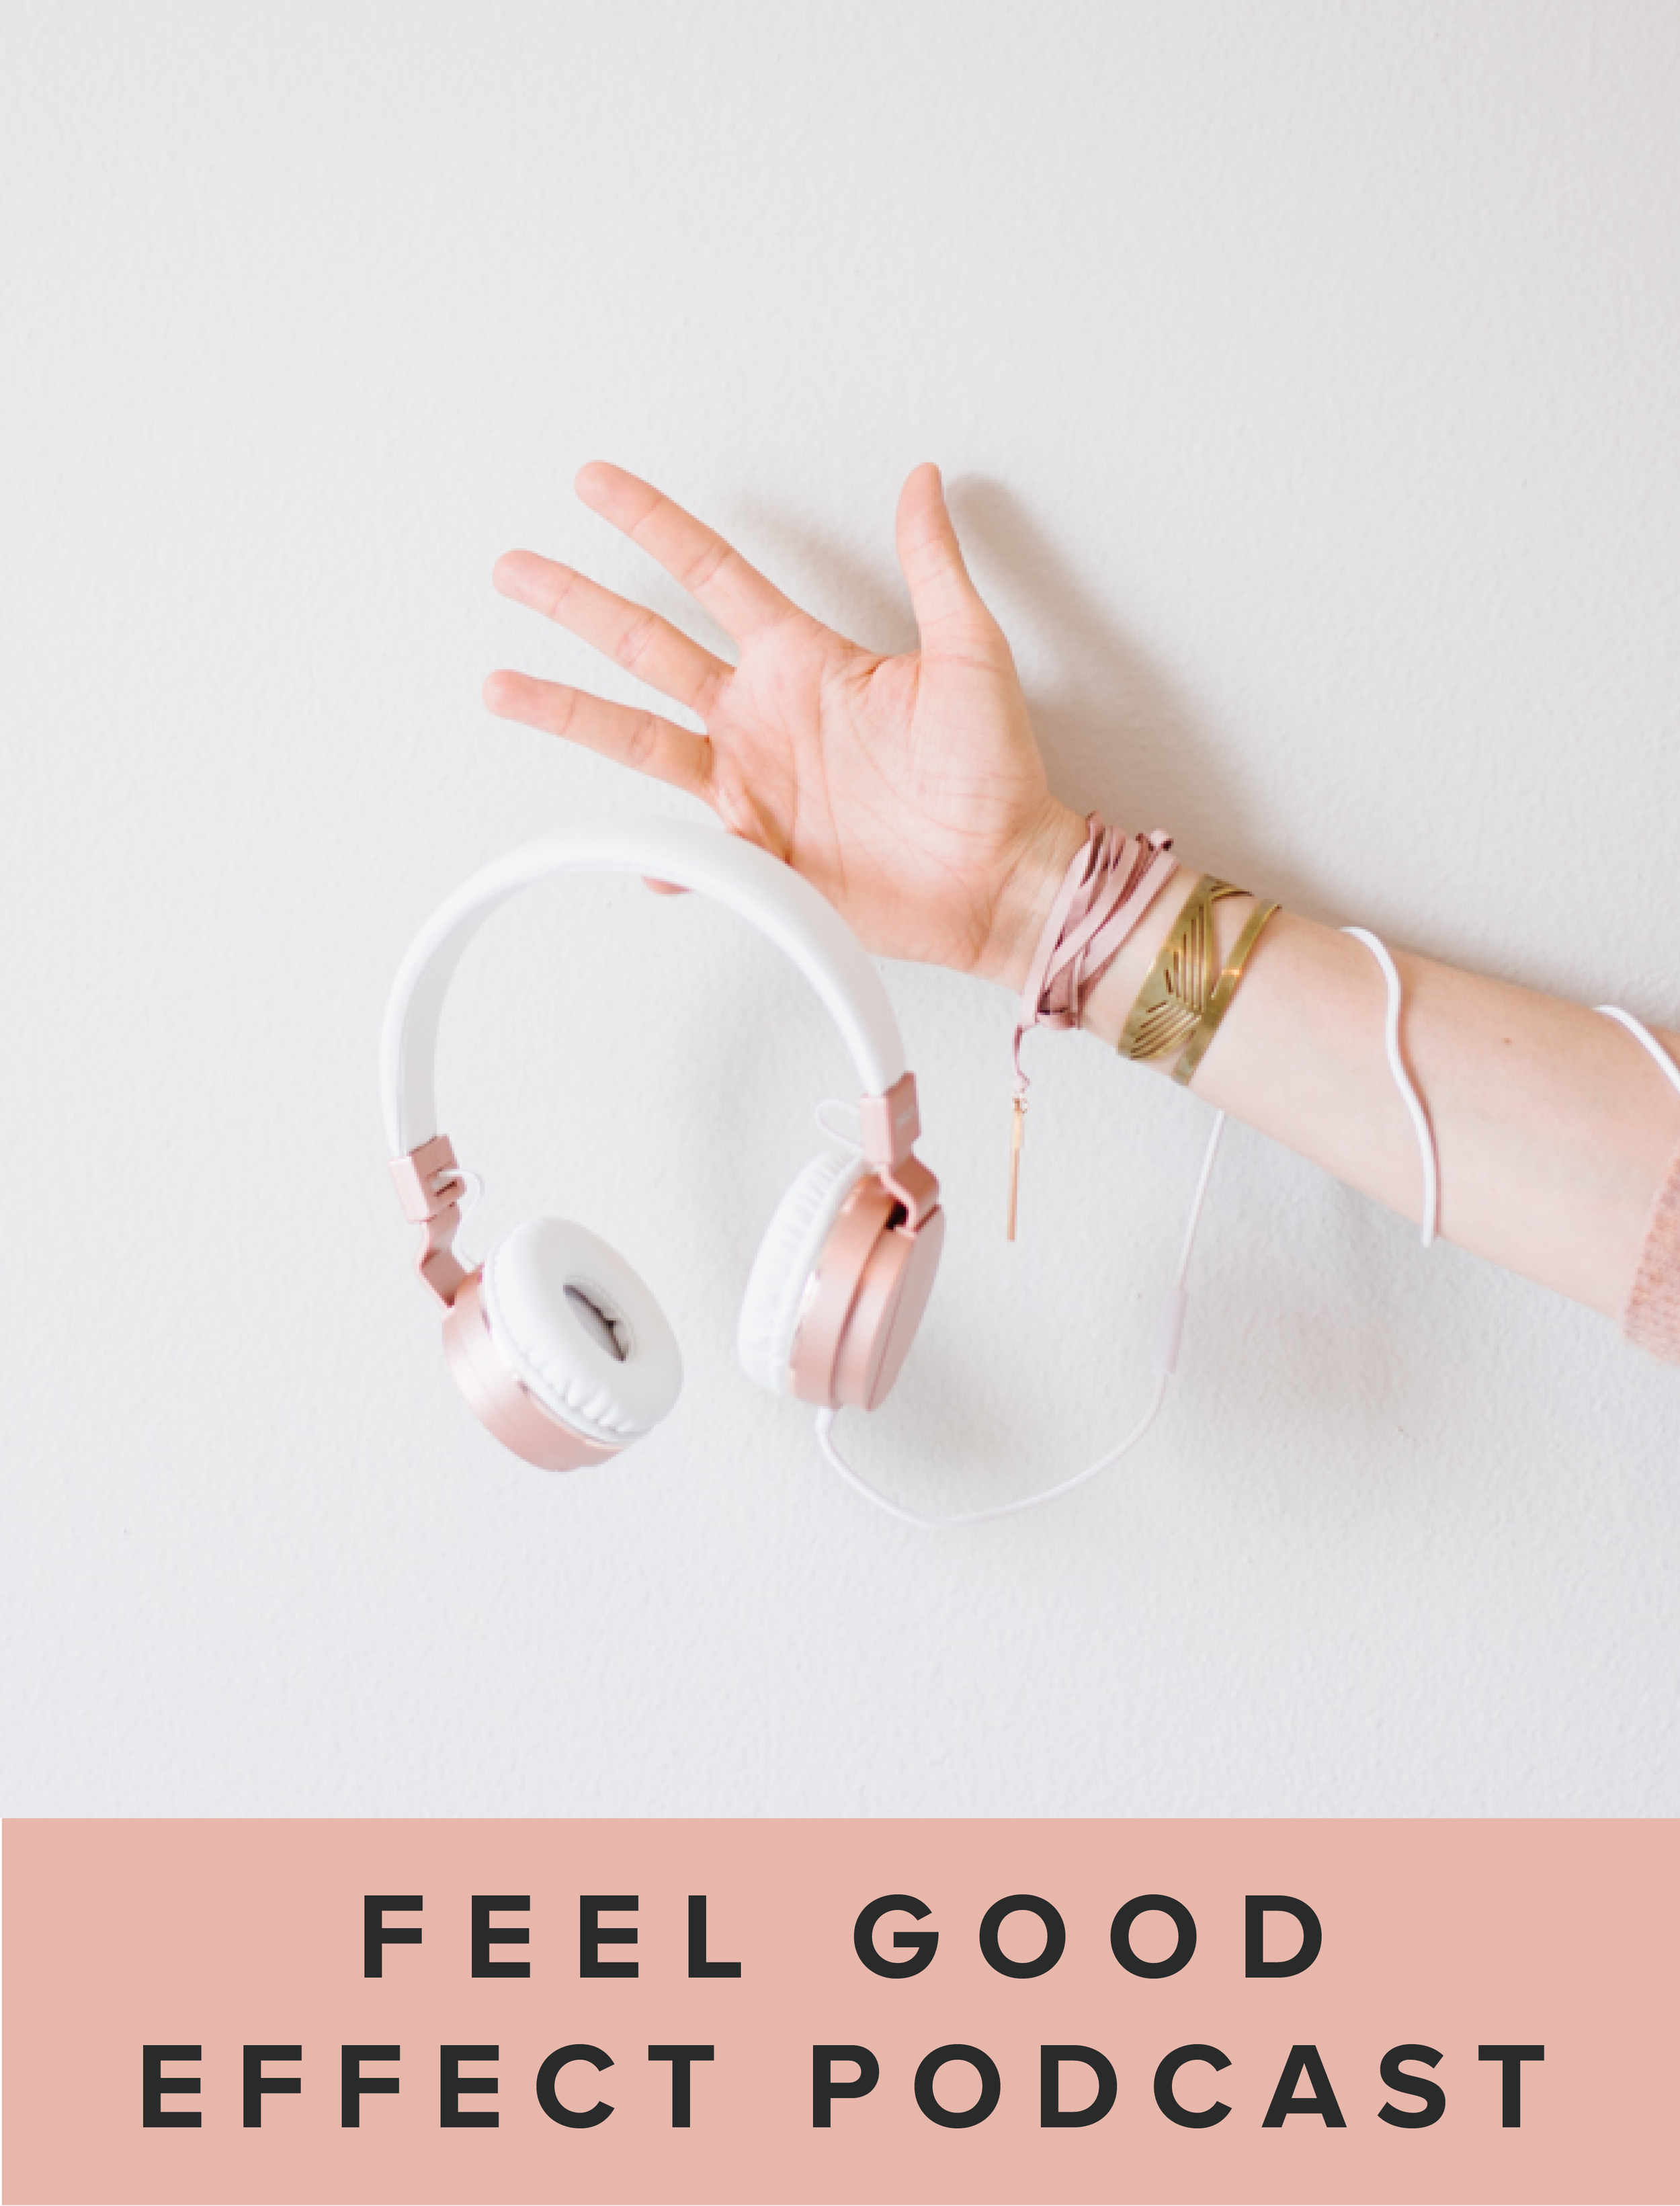 Feel Good Effect podcast.